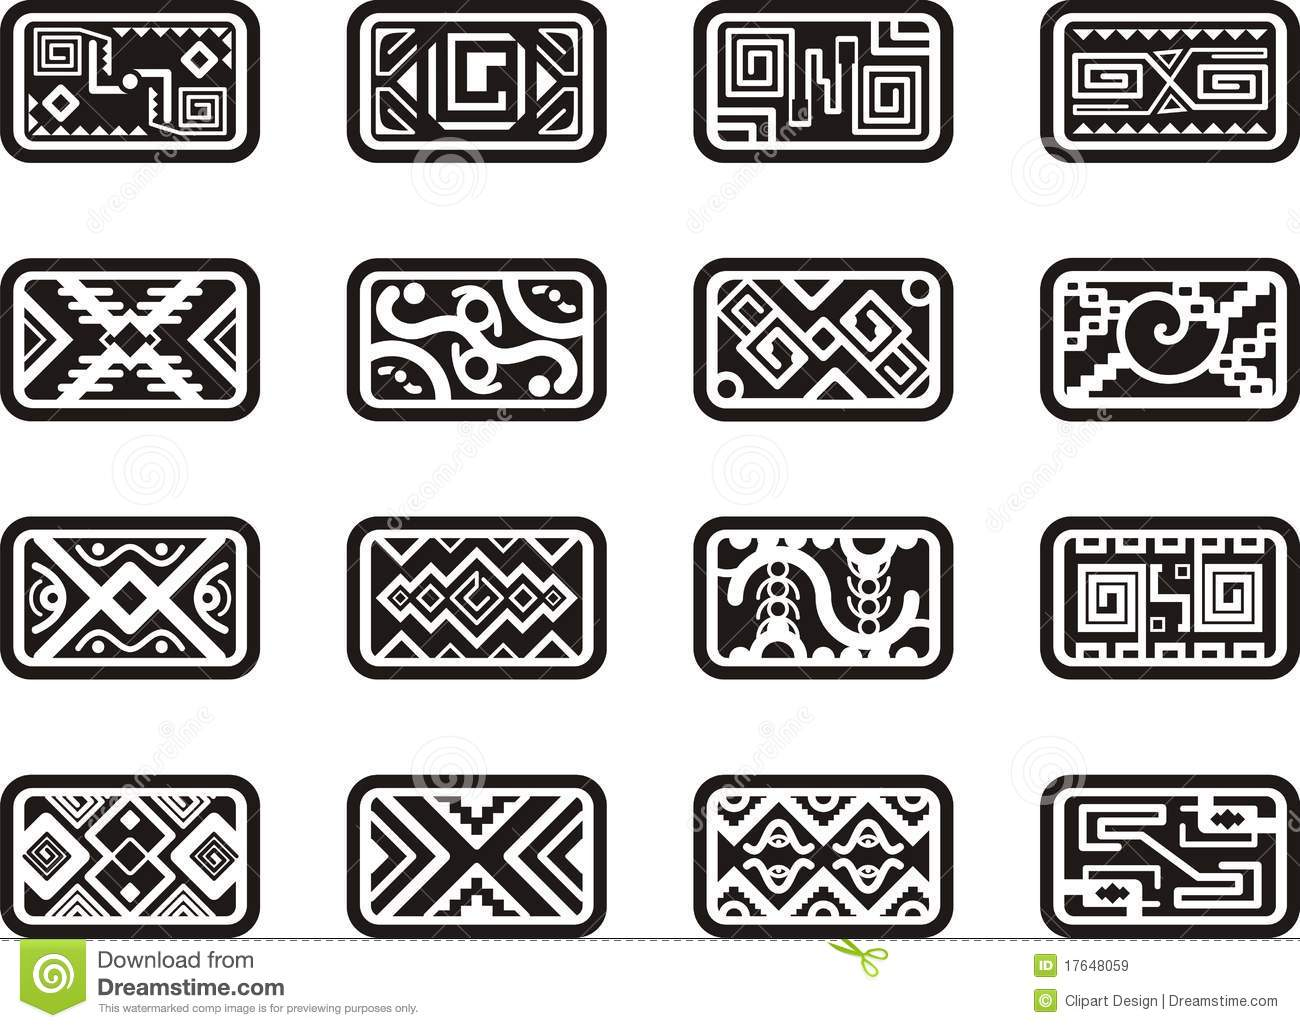 Decorative frames set download free vector art stock graphics - Mexican Ornamental Designs Royalty Free Stock Images